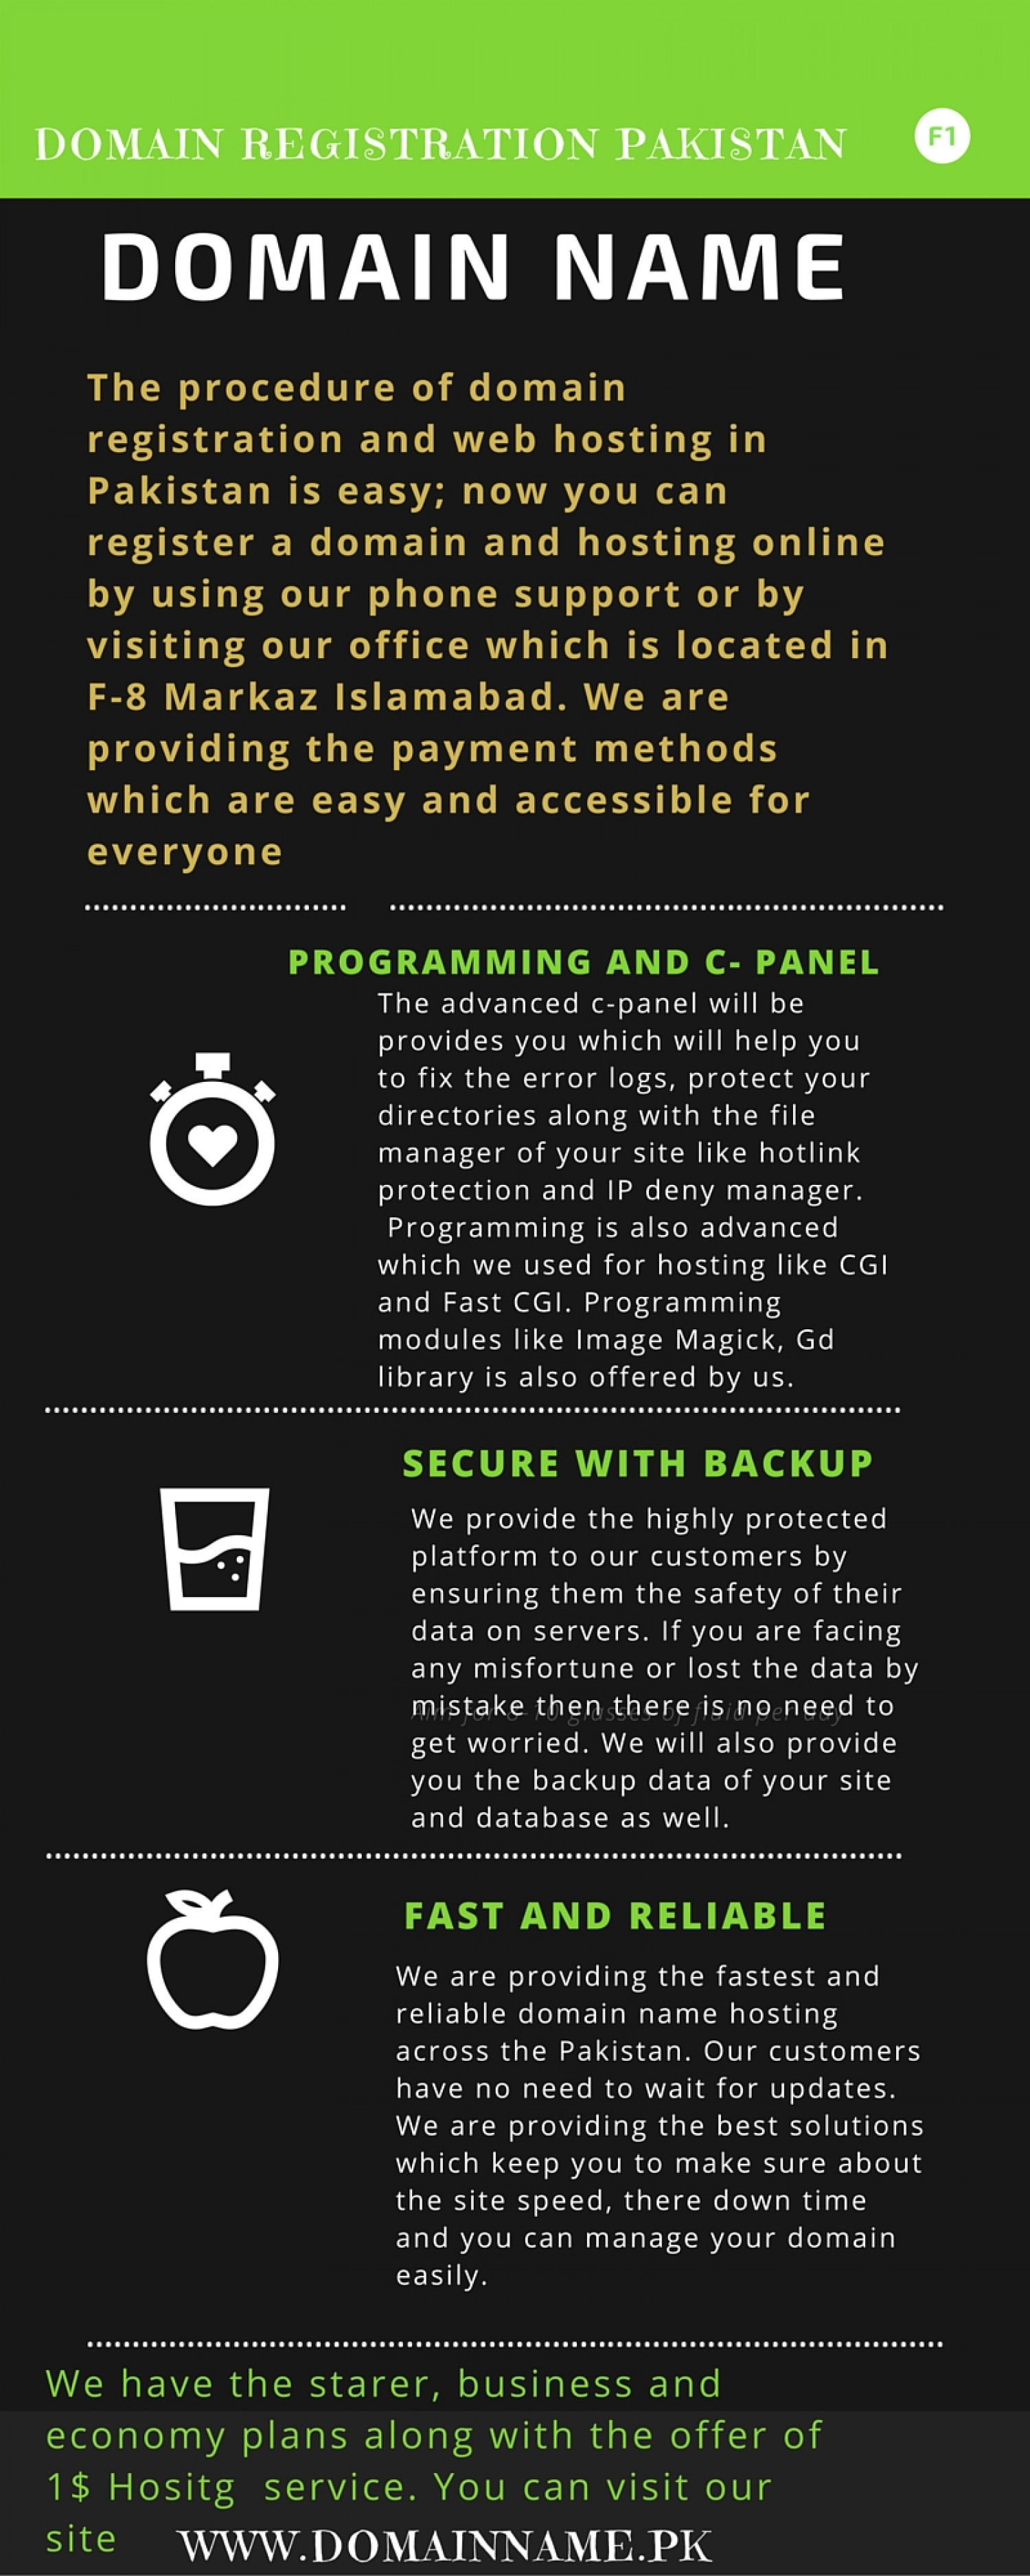 Web Hosting Services in Pakistan Infographic